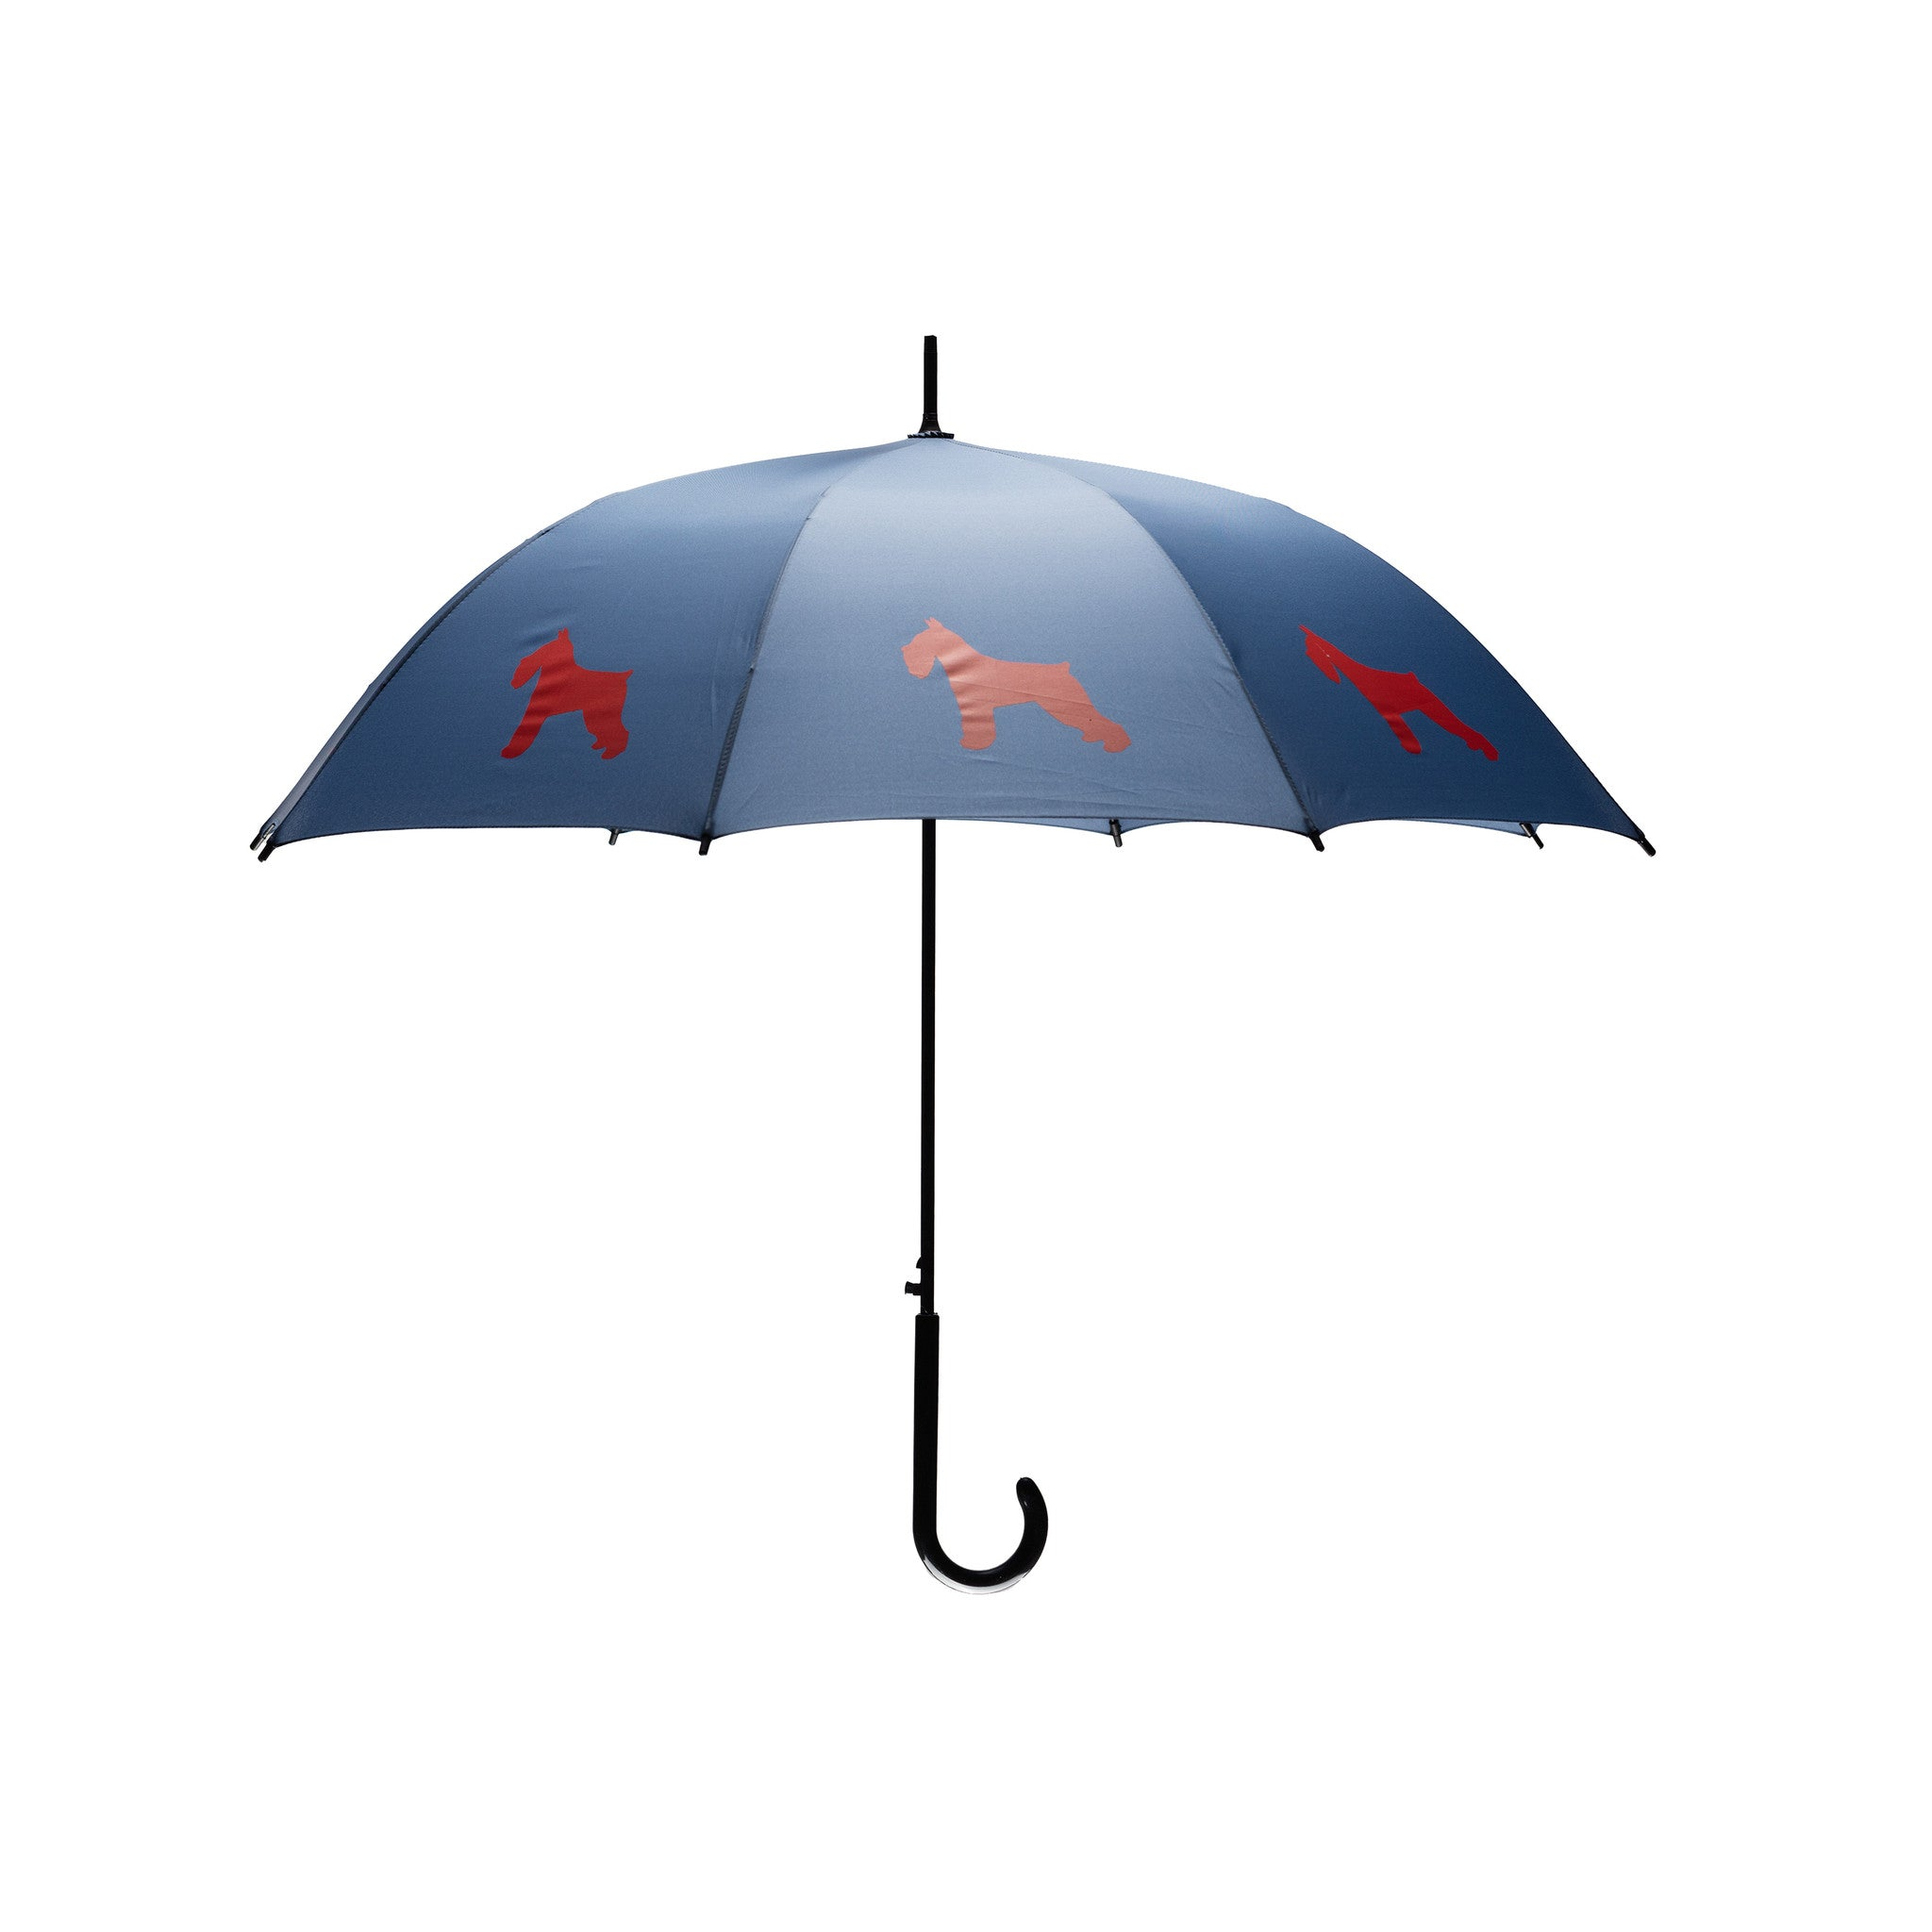 Schnauzer Umbrella Red on Navy Blue from San Francisco